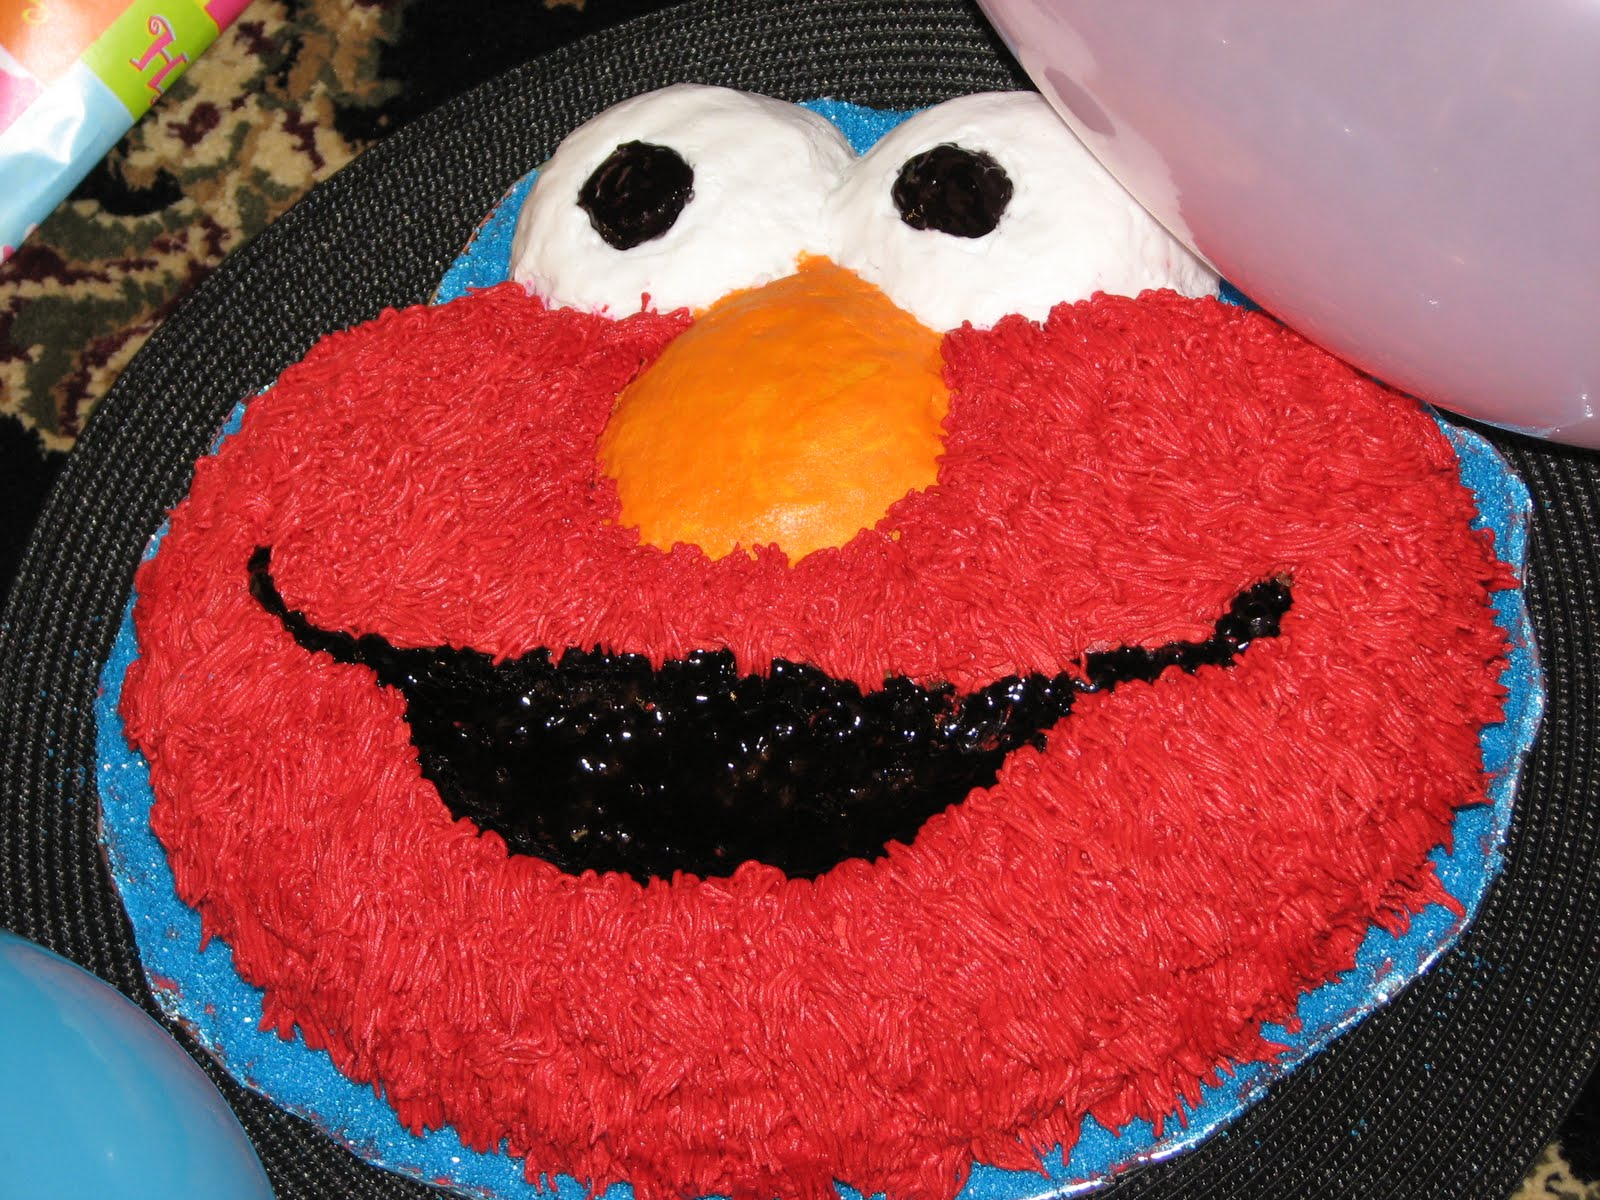 Elmo Cake Decorating Instructions : Savvy Blog....Selebrating Life s Special Moments: TODDLER ...